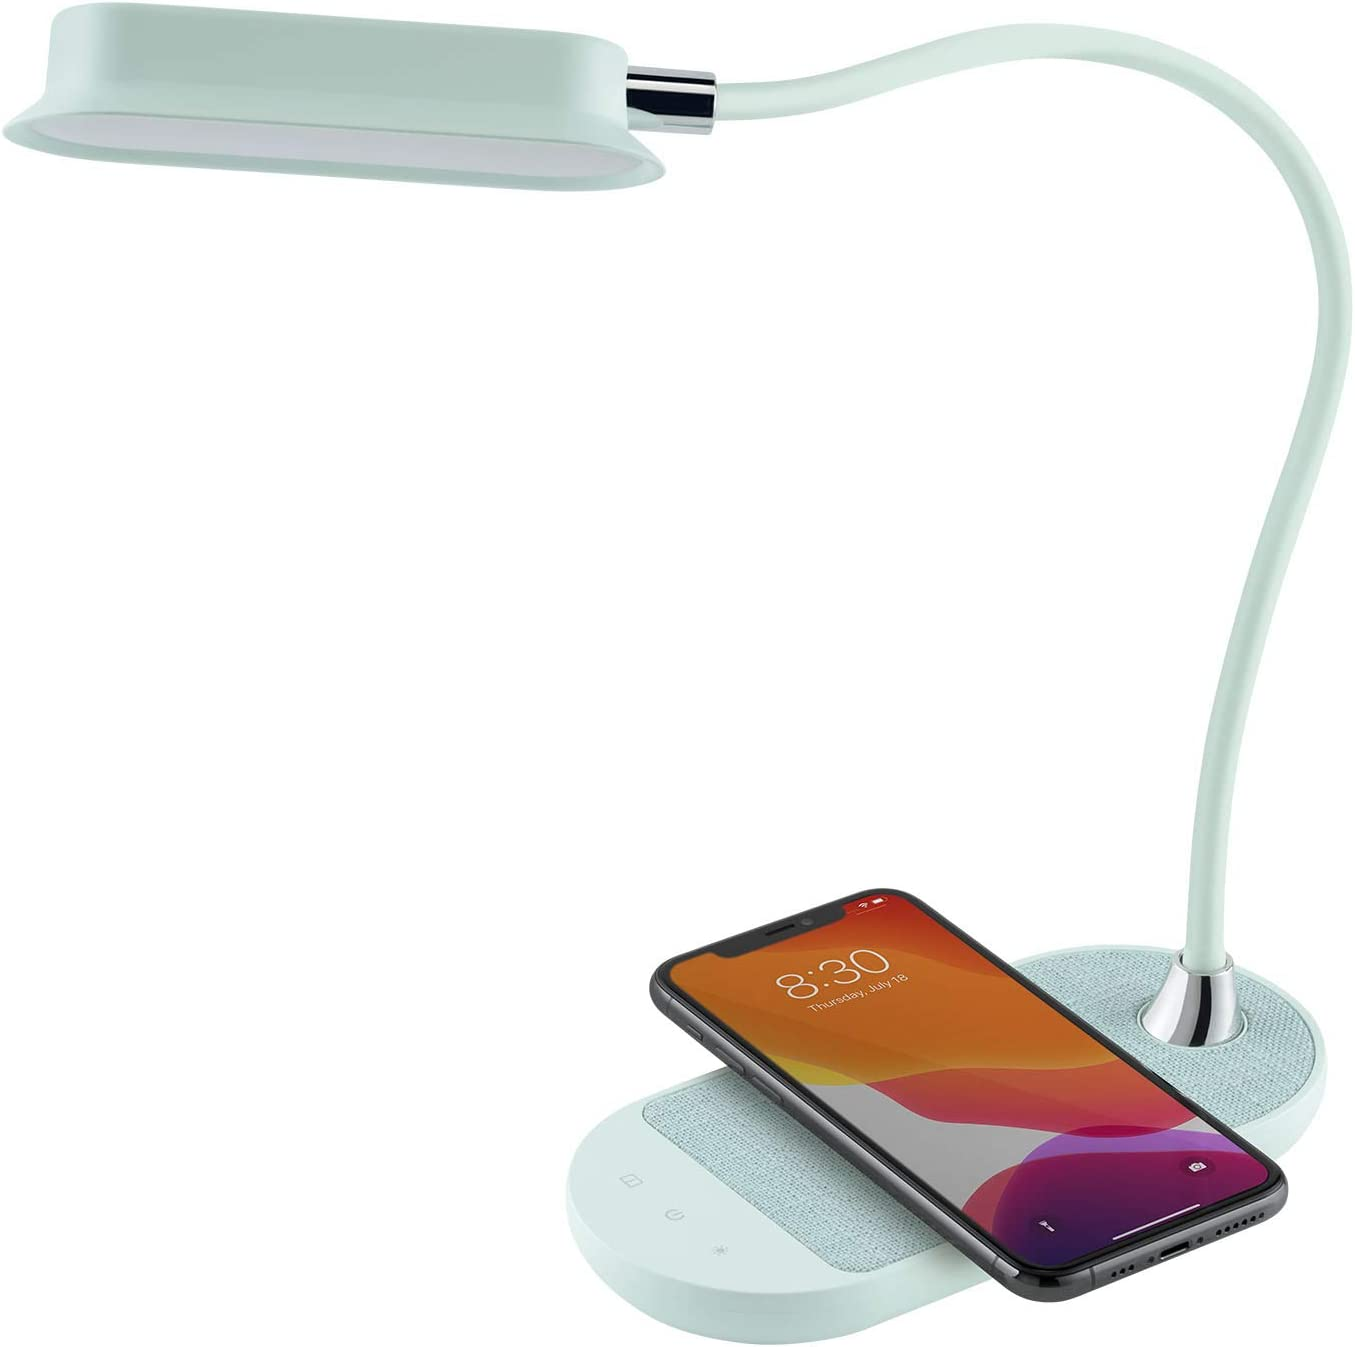 Momax LED Desk Lamp with Gooseneck Flexible Charger 55% Rapid rise OFF Wireless Qi